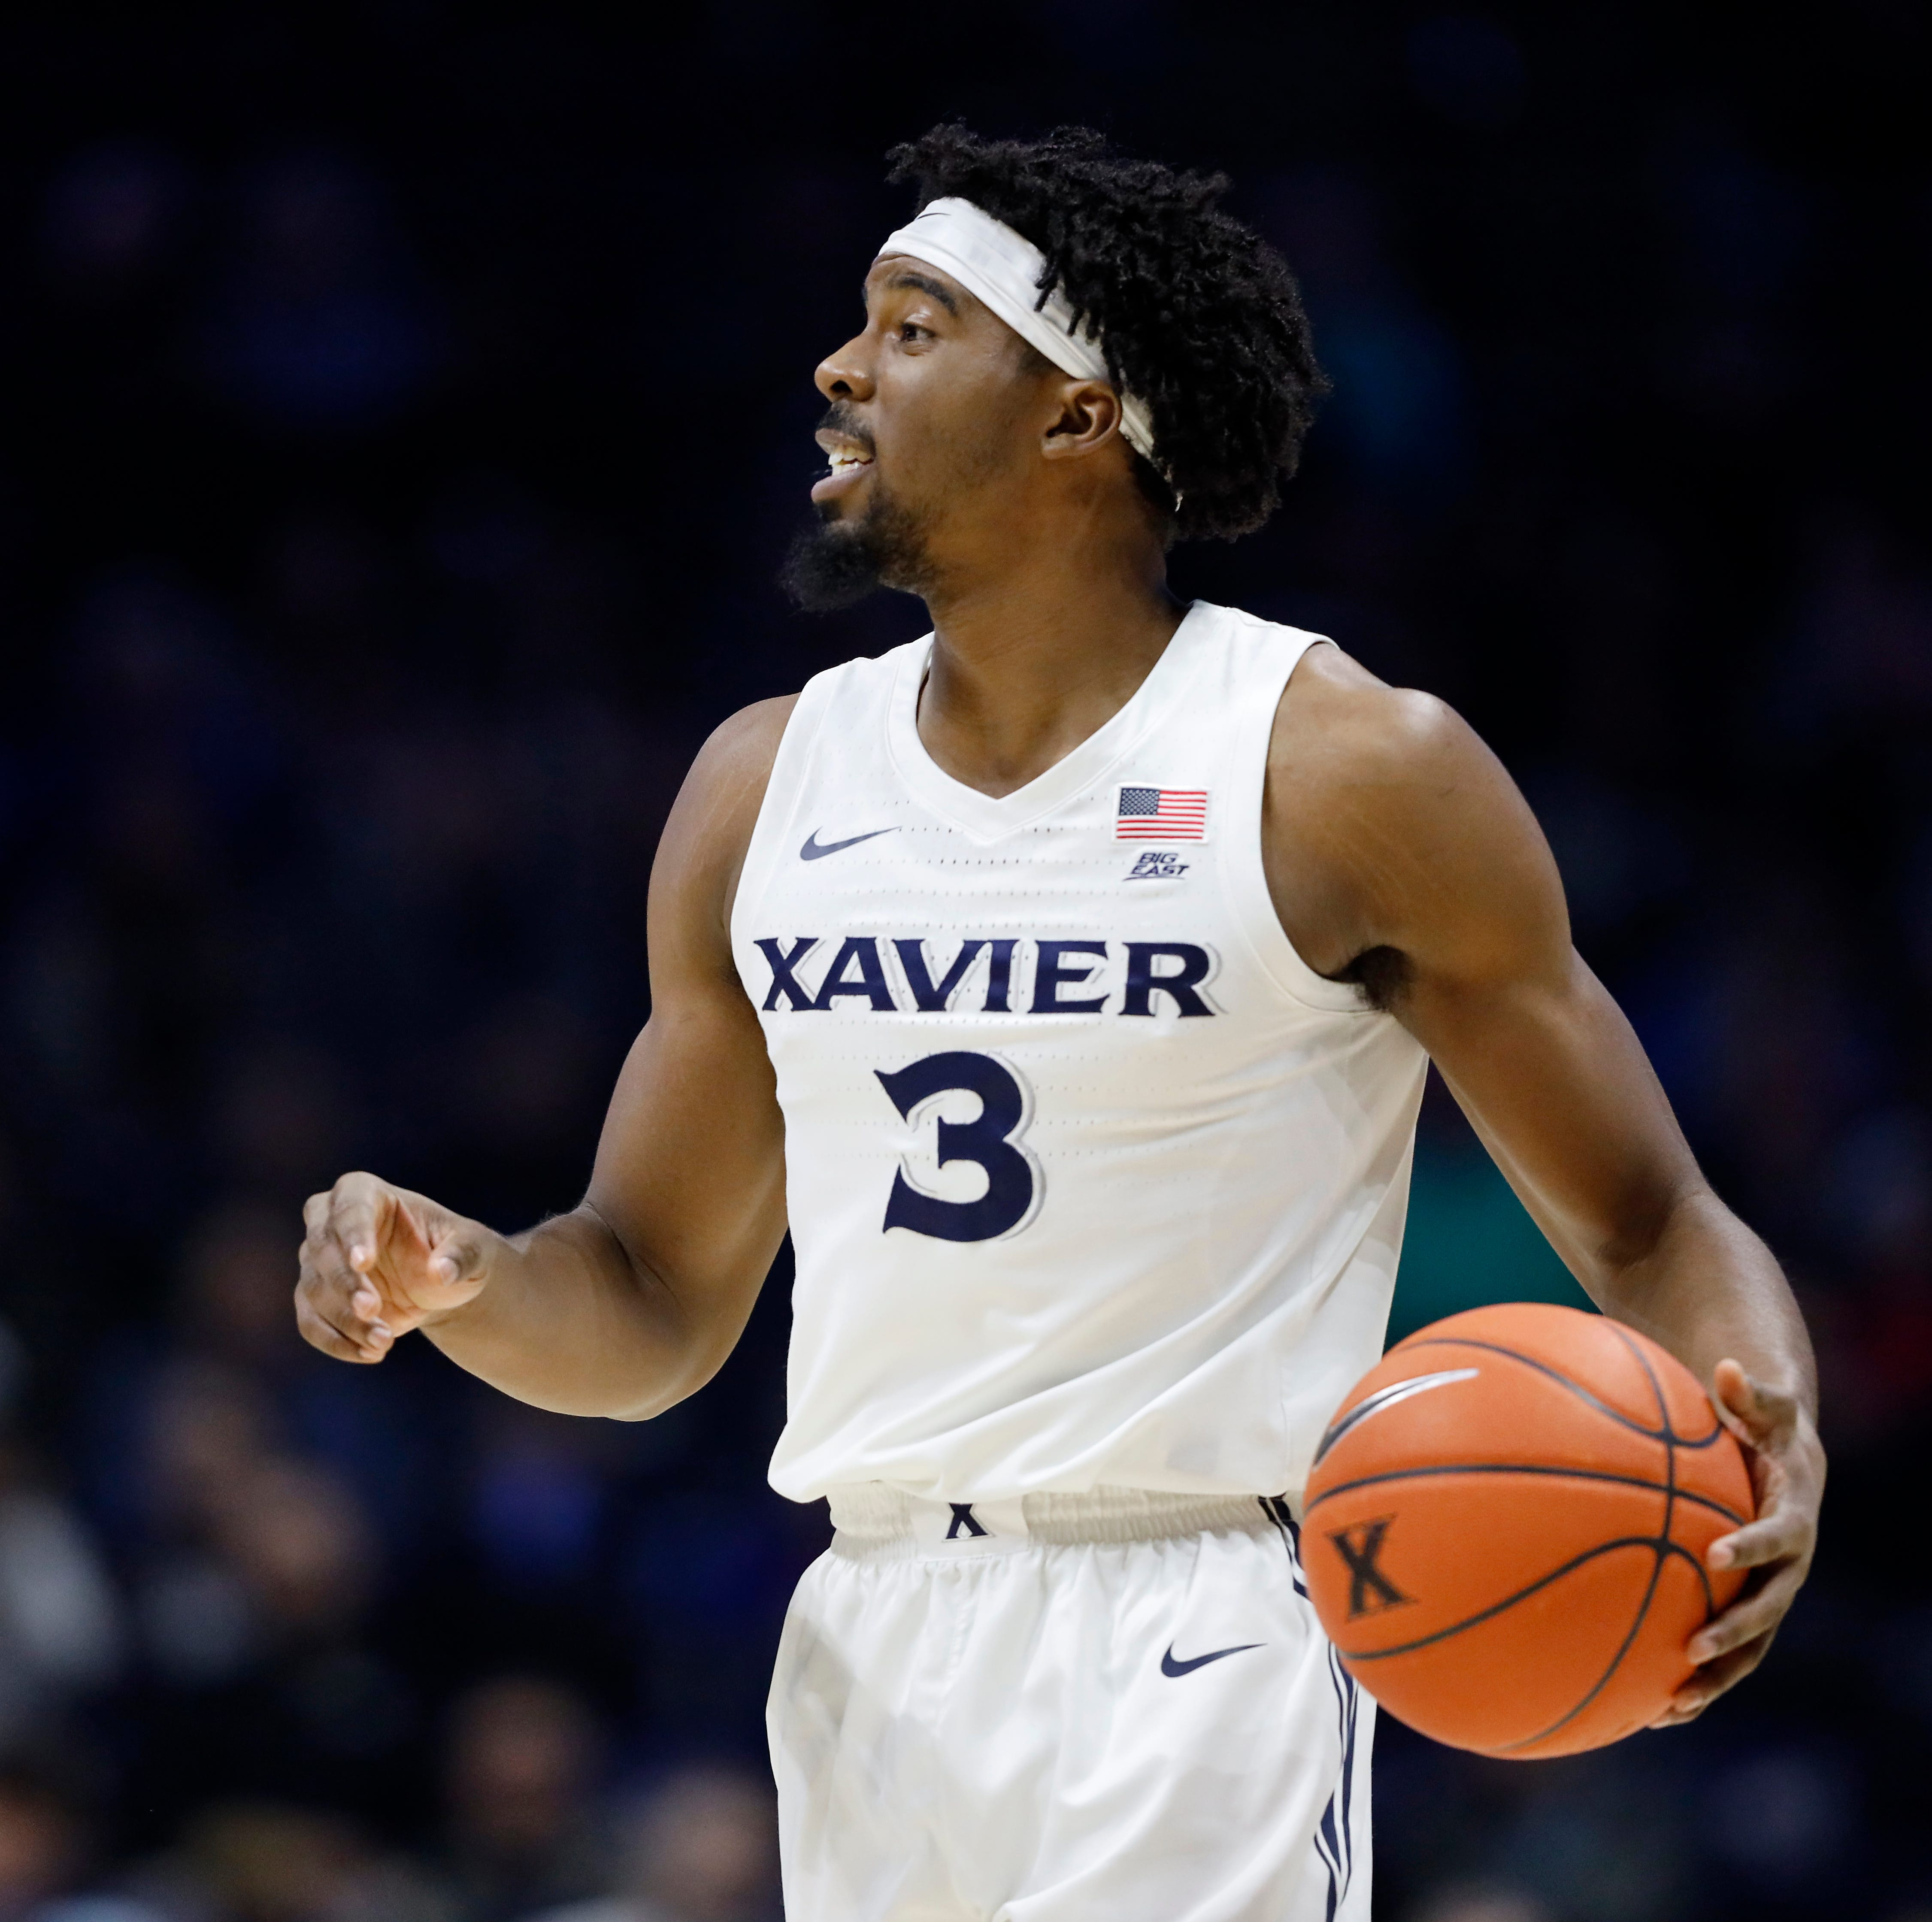 Xavier beats Detroit Mercy behind a career night from Quentin Goodin